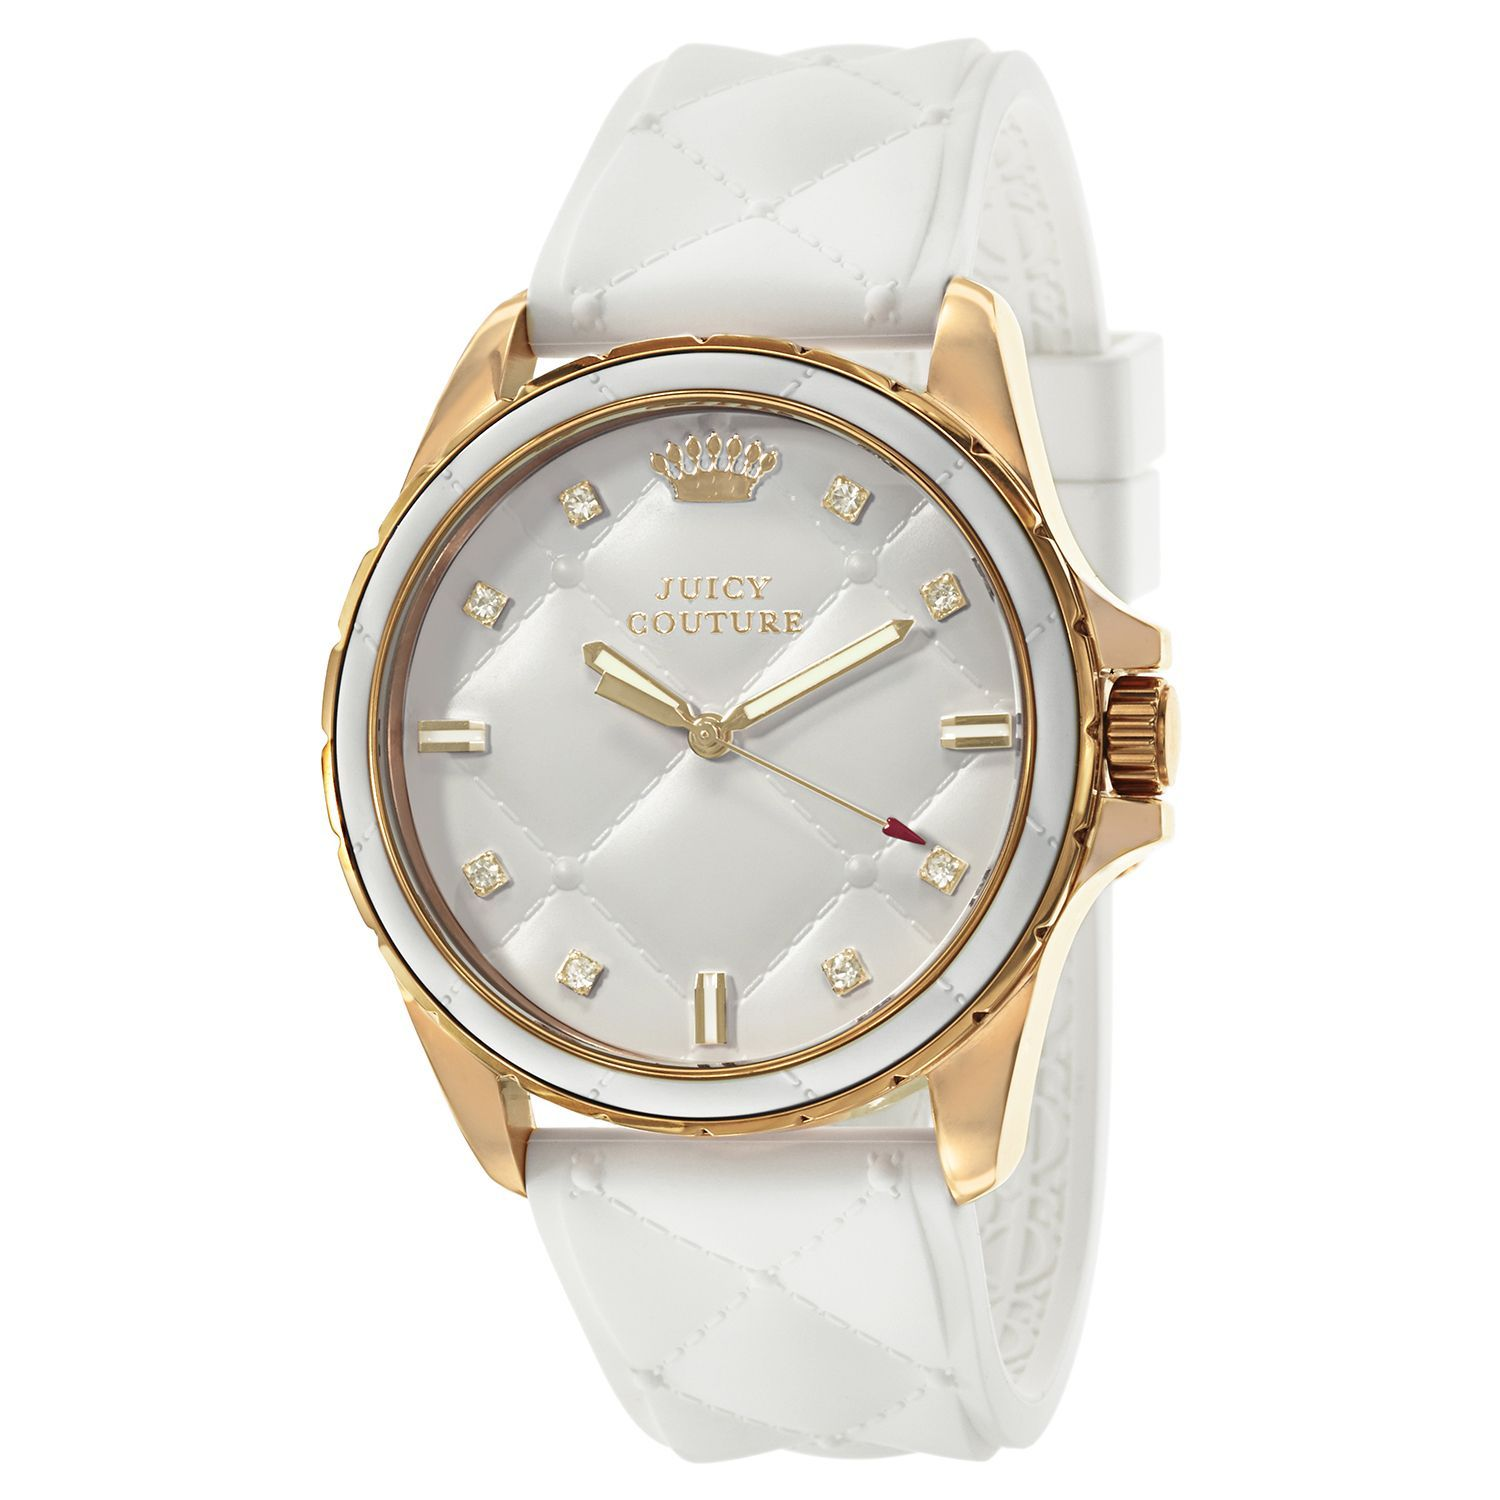 Feel stylish with this women's white dial watch. Finished with decorative crystals and protected by a 30 meters water resistance.